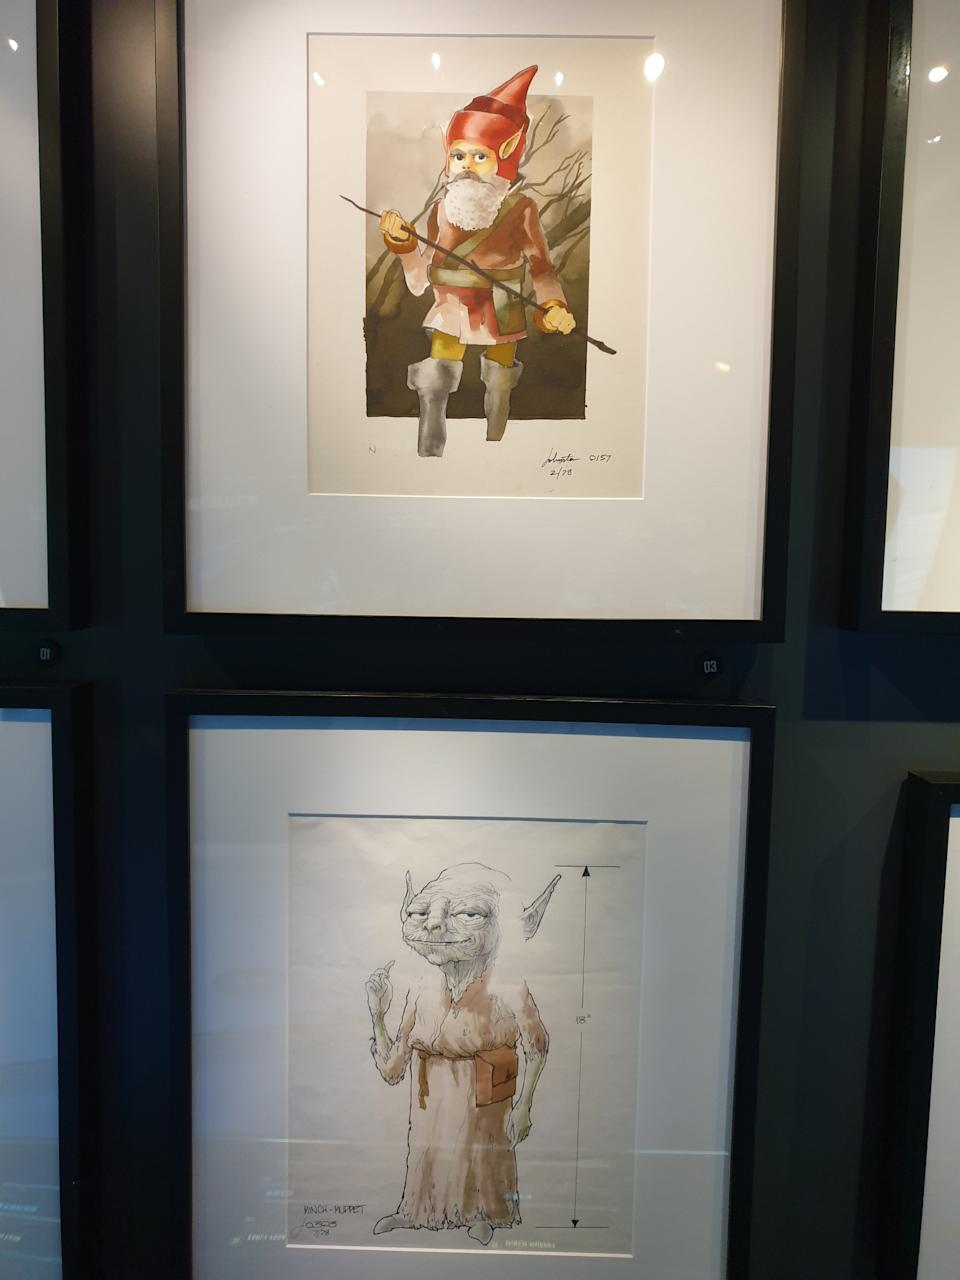 Early artworks of Yoda designs by artist Joe Johnston at the Star Wars Identities exhibition in Singapore at the Artscience Museum. (Photo: Teng Yong Ping)